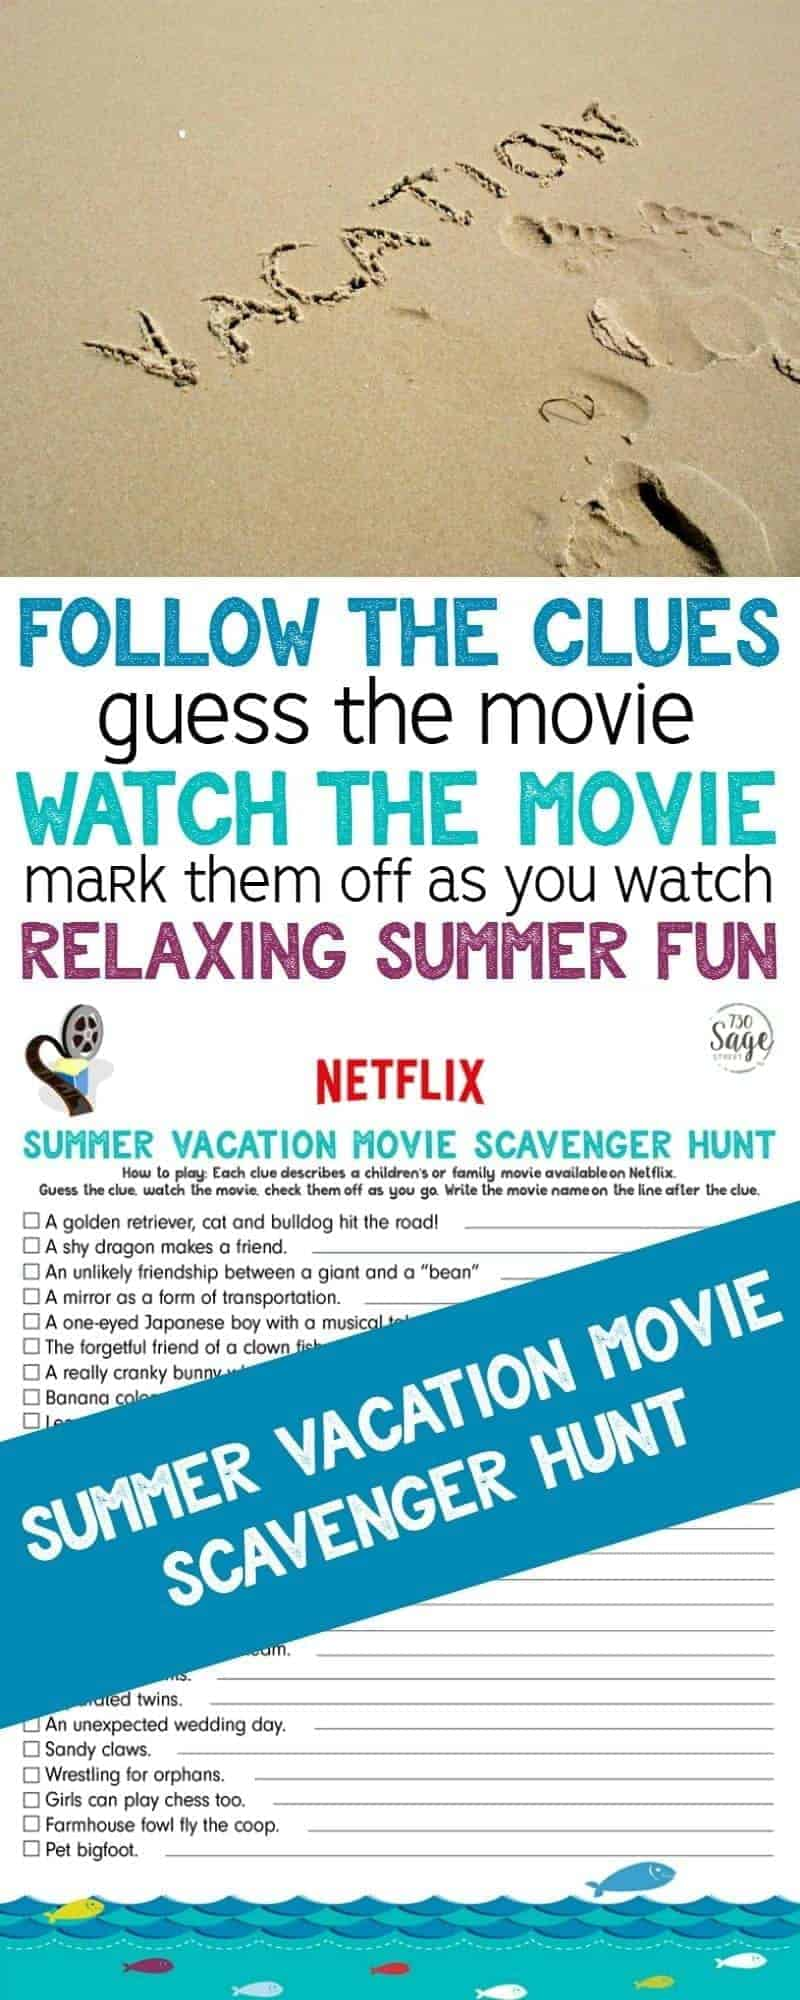 This Netflix Summer Vacation Movie Scavenger Hunt is filled with family-friendly movie clues for relaxing summer fun. Guess the movie clue, & mark them off as you watch.